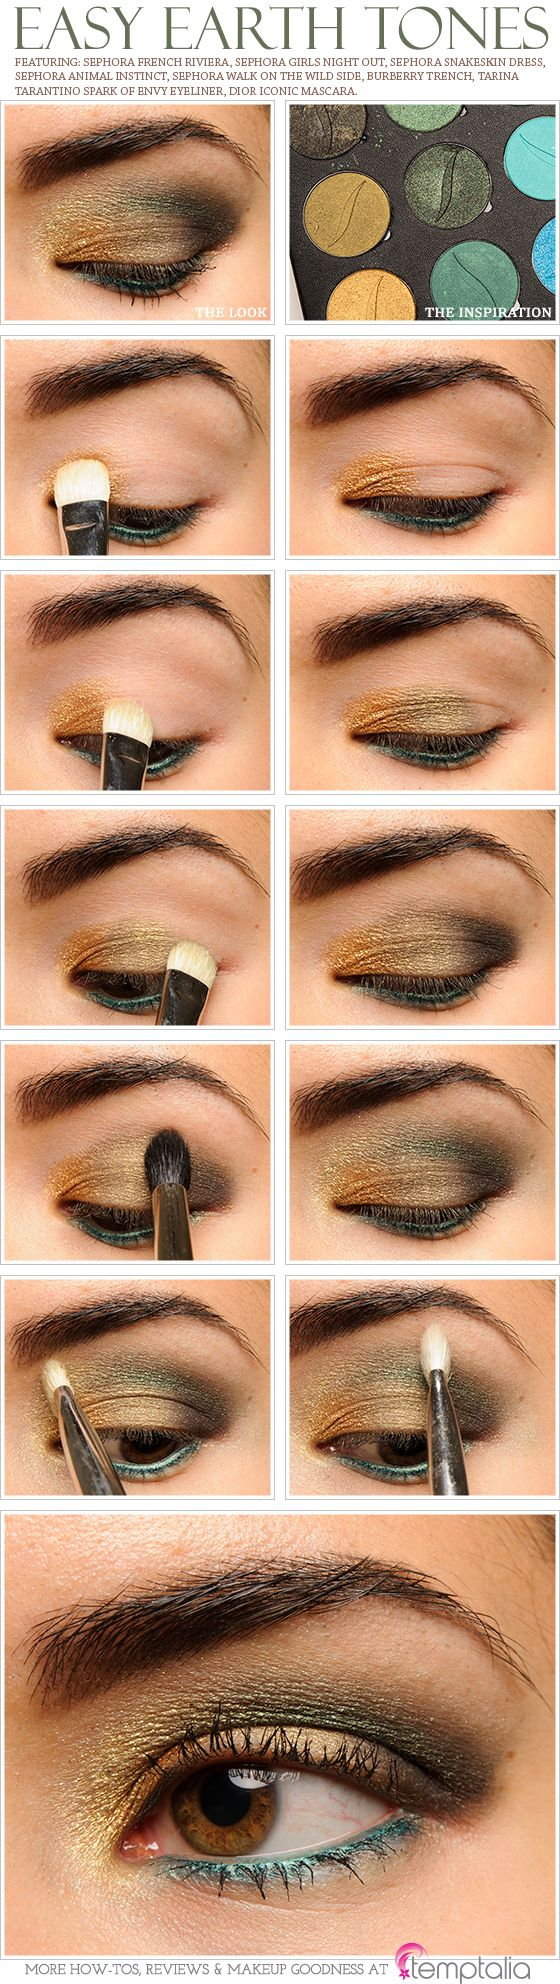 Easy Earth Tones - Love this, except for the blue liner on the lower lashes. Brown or green instead.